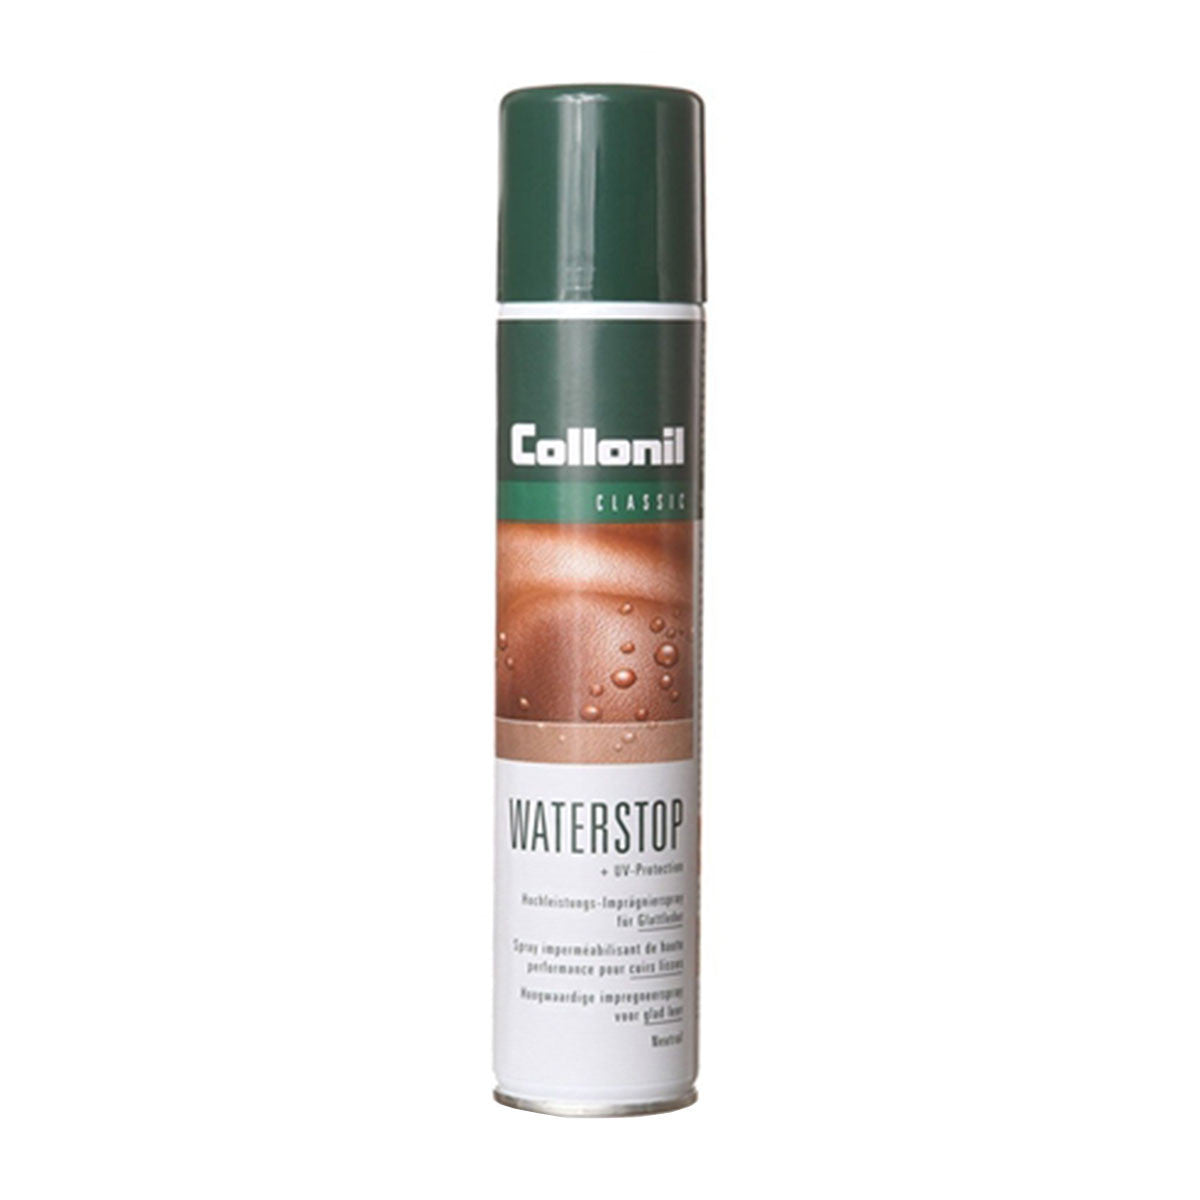 Collonil Waterstop Spray